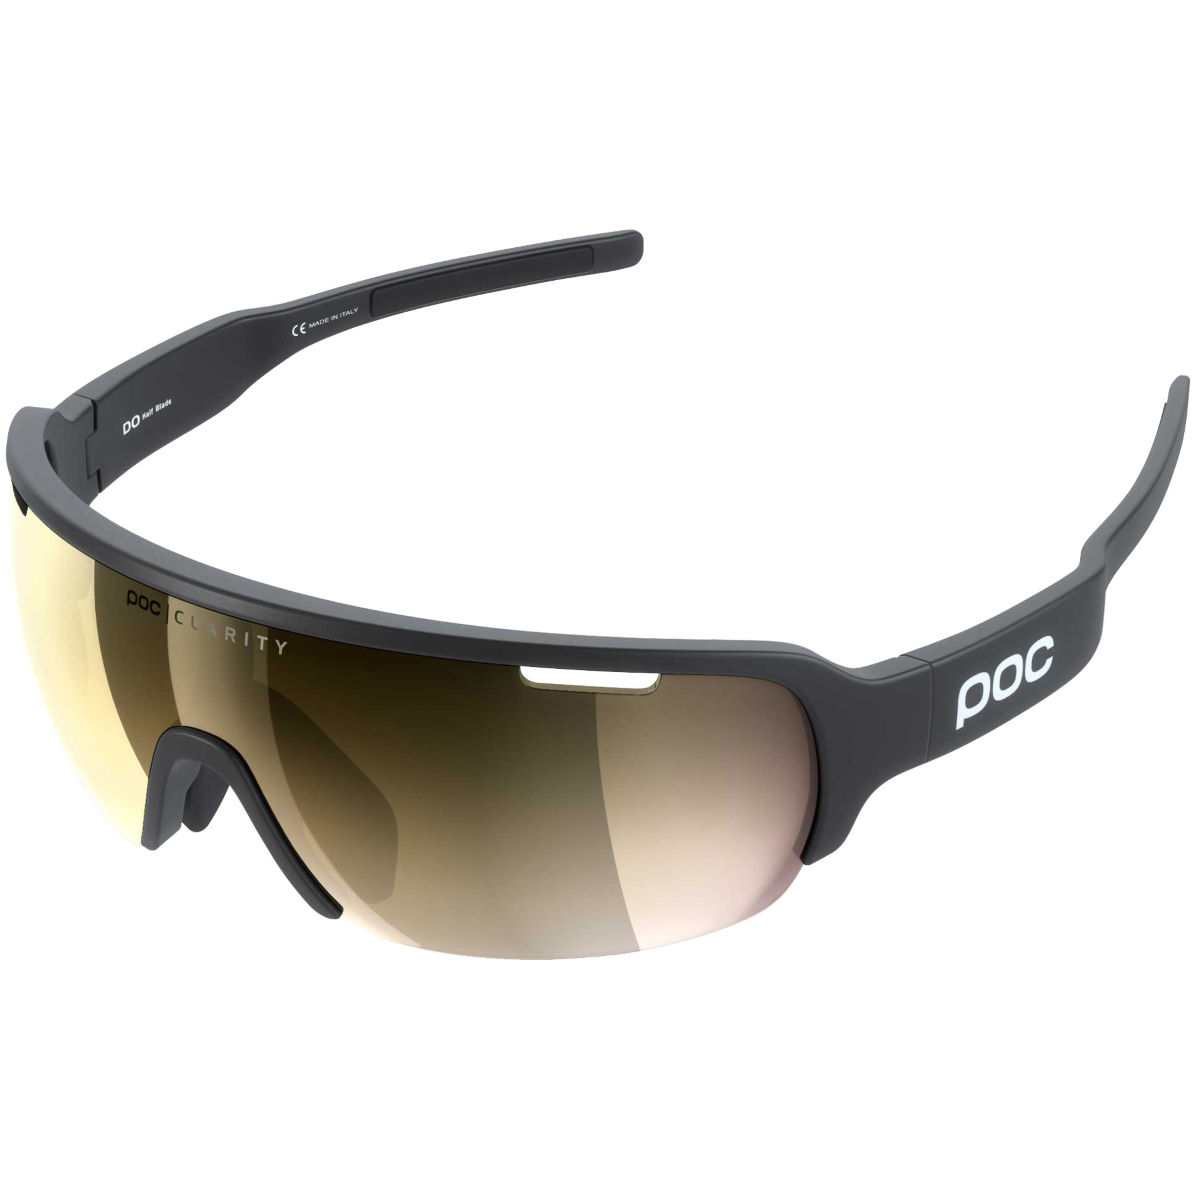 Poc Do Half Blade Clarity Avip Sunglasses - One Size Black/gold